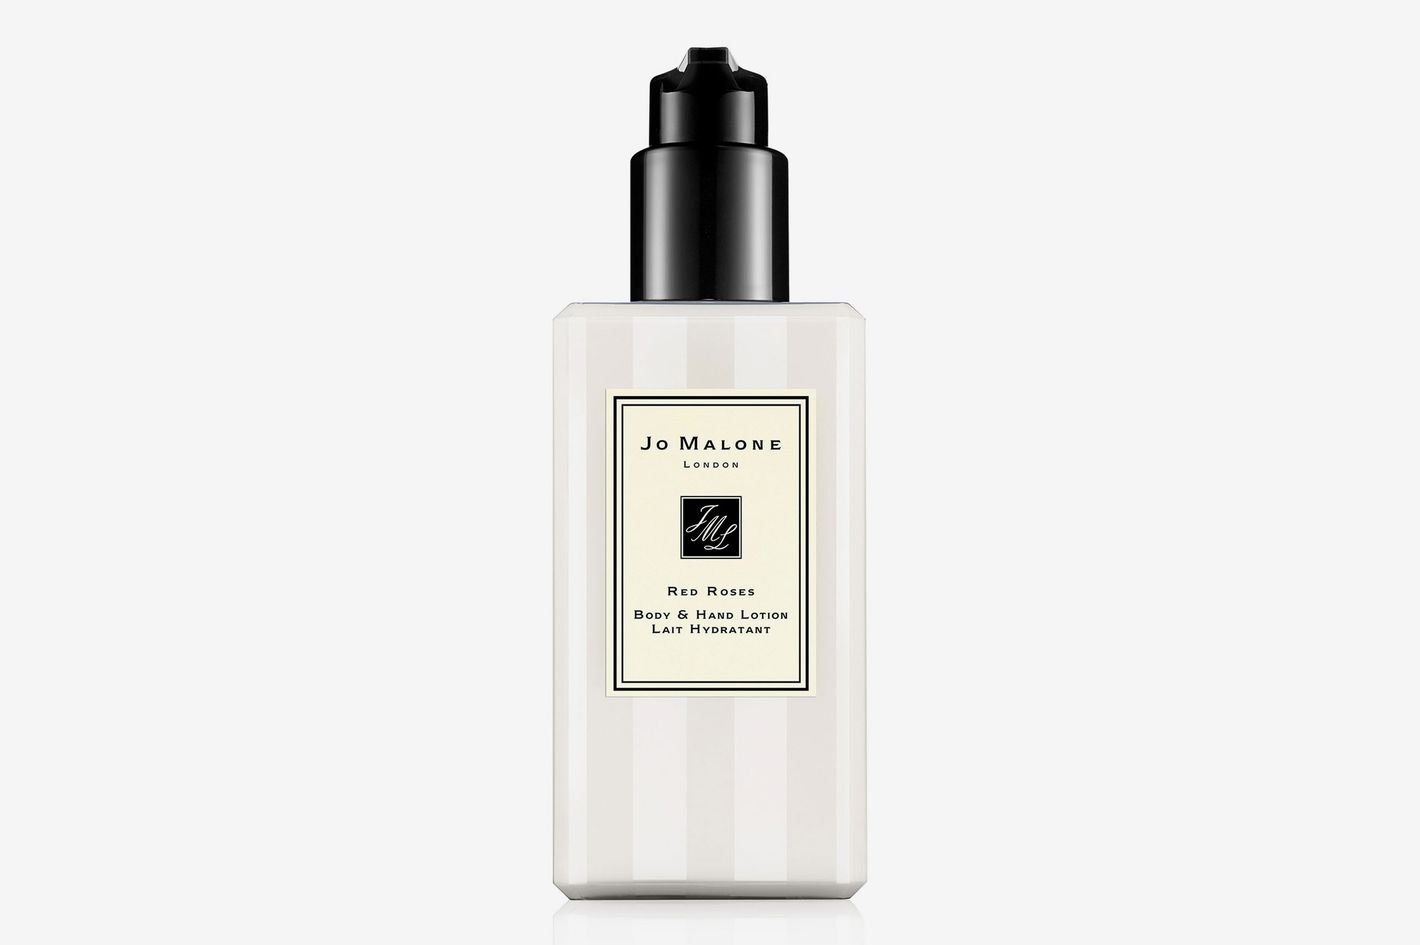 Jo Malone London Red Roses Body & Hand Lotion